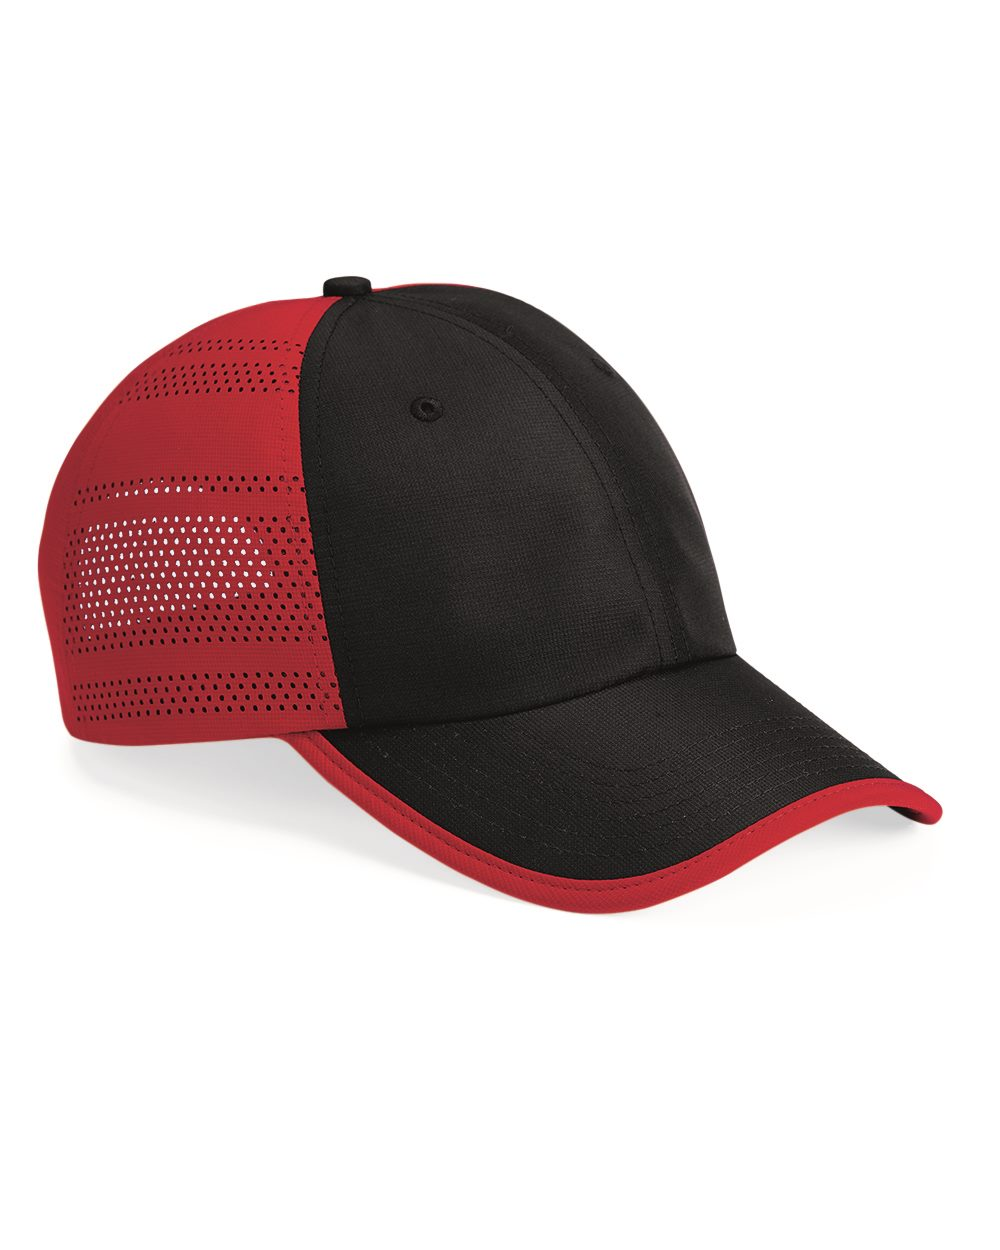 Team Sportsman AH60 - Performance Ripstop Perforated . ca027e1321a1